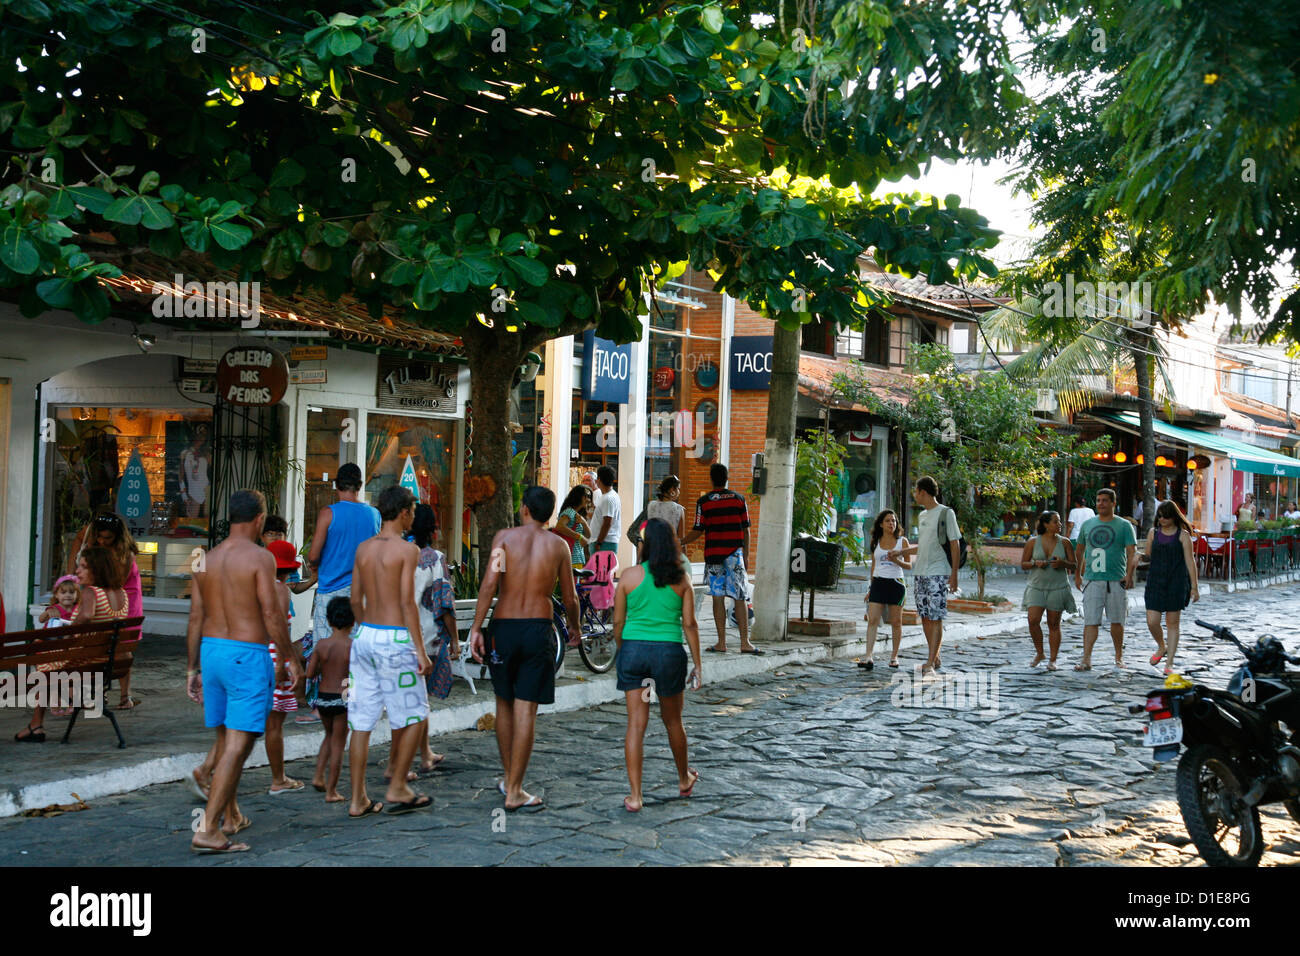 People walking on Rua das Pedras dotted with restaurants and boutiques, Buzios, Rio de Janeiro State, Brazil, South - Stock Image